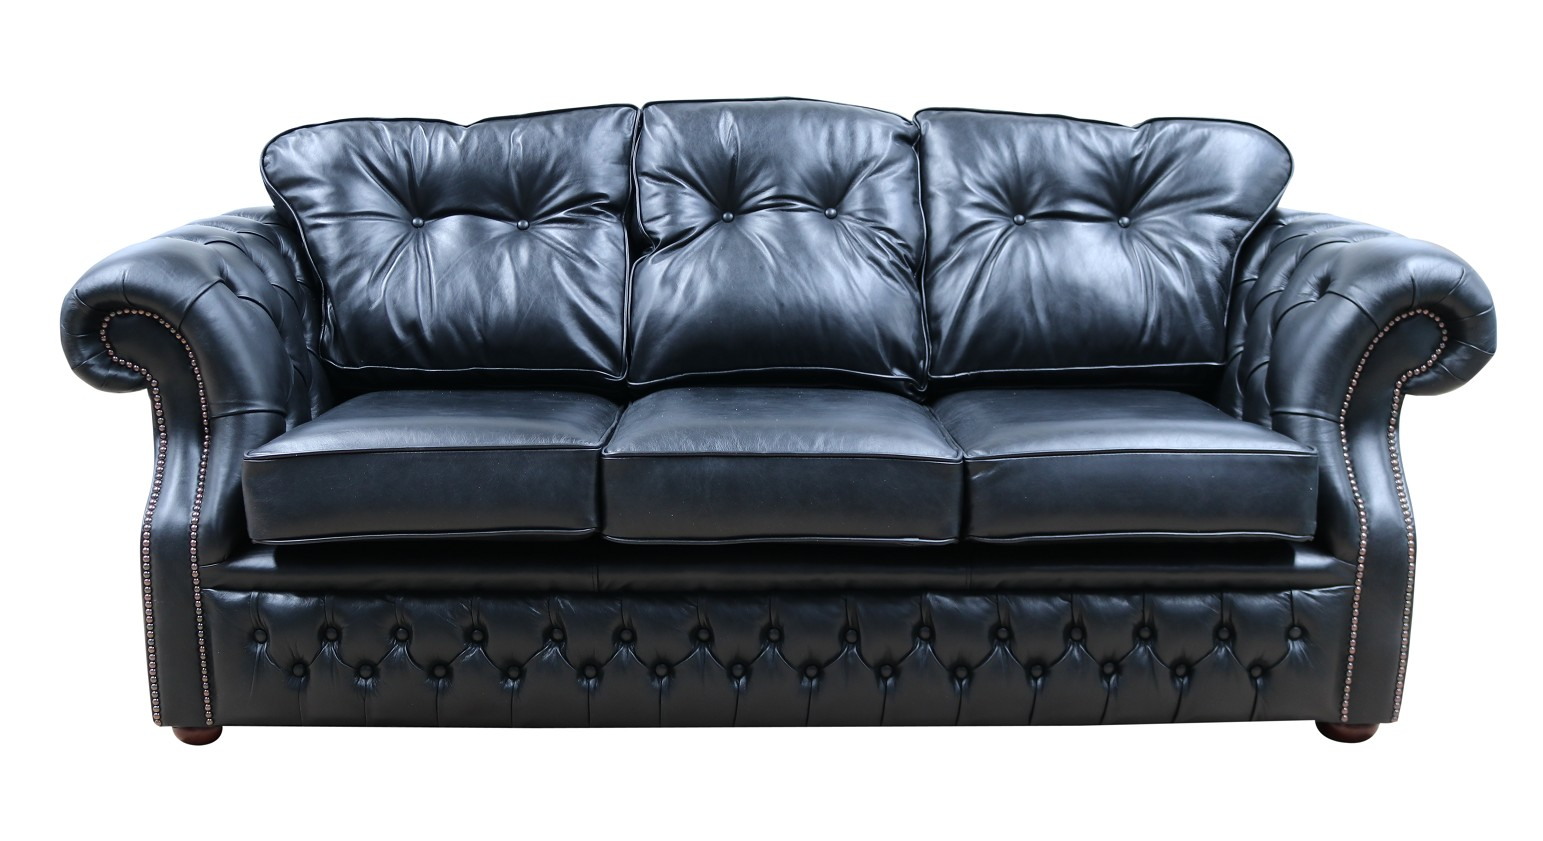 Chesterfield Era 3 Seater Sofa Old English Black Leather